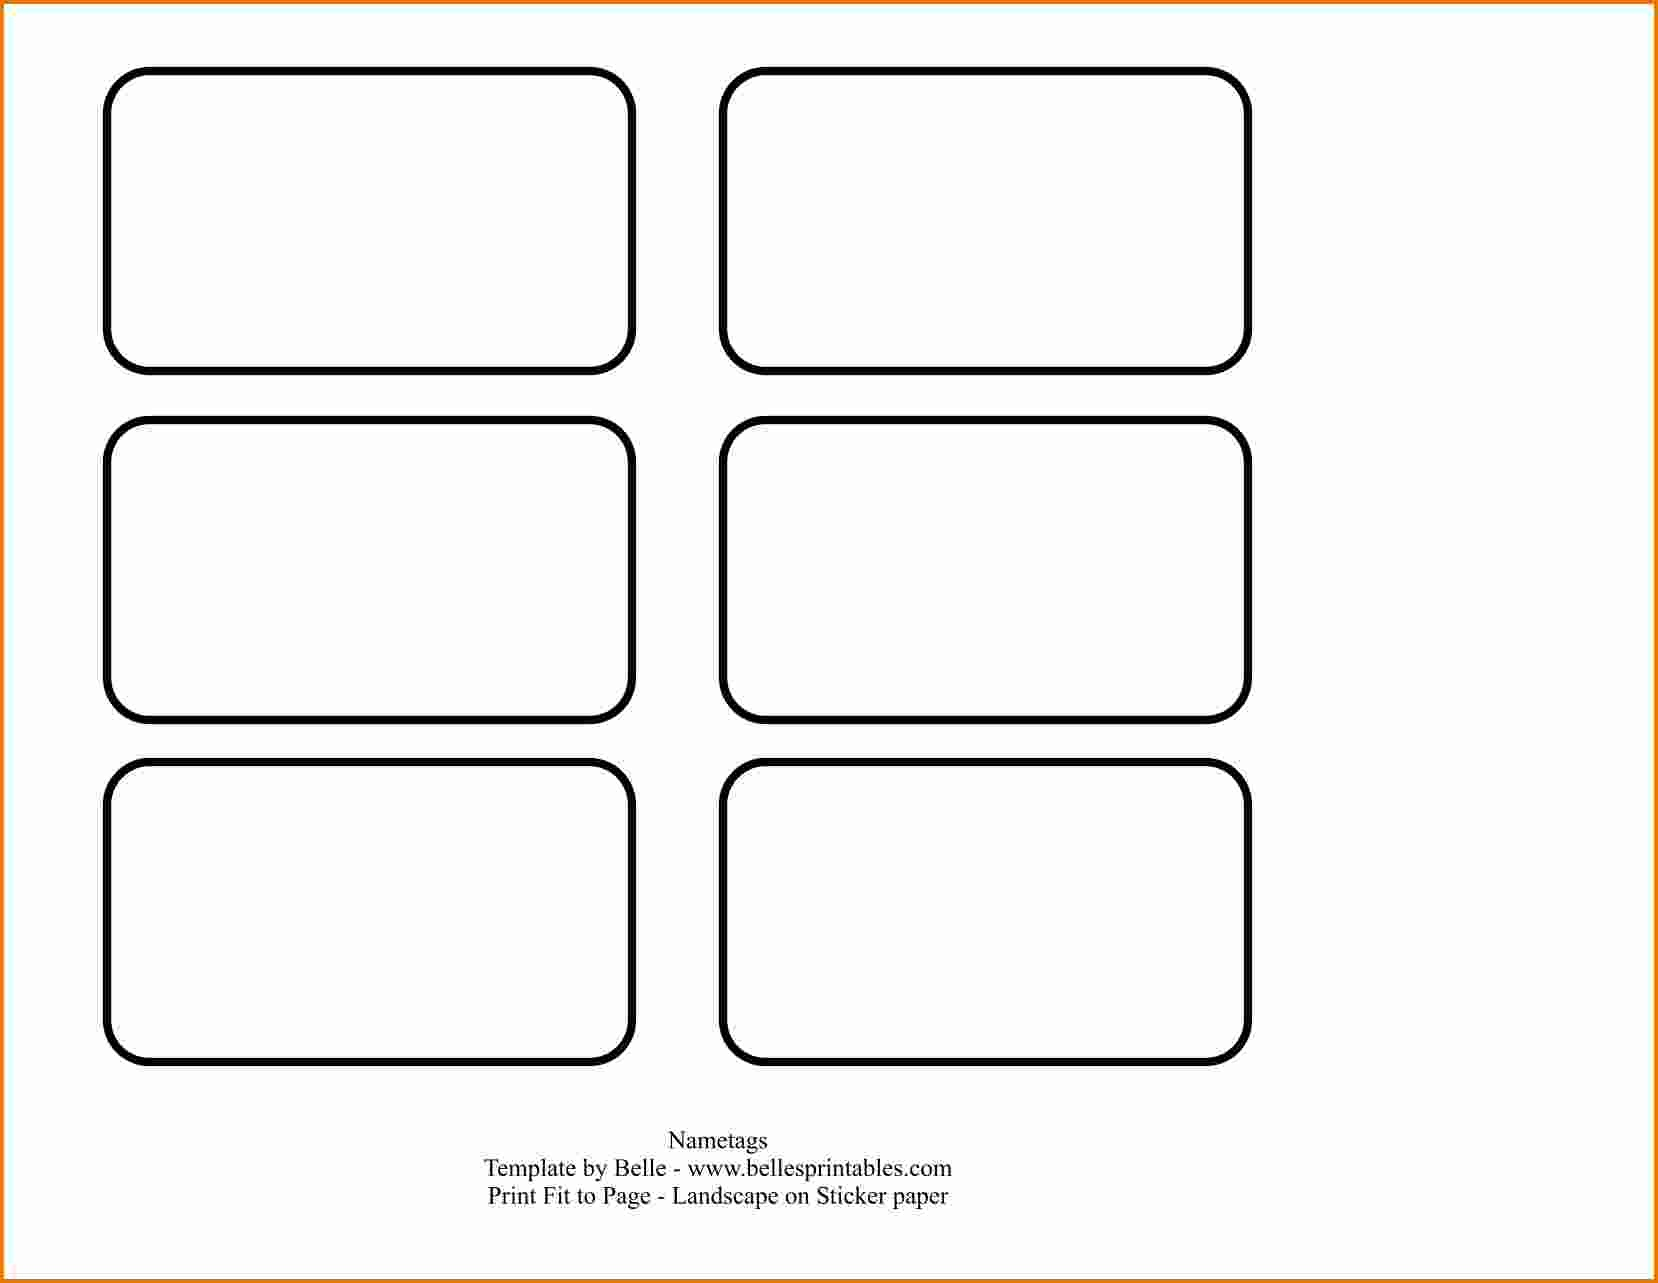 019 Free Online Label Templates 959403 Pac Lineitokq2Dmyscz Template - Free Printable Address Labels